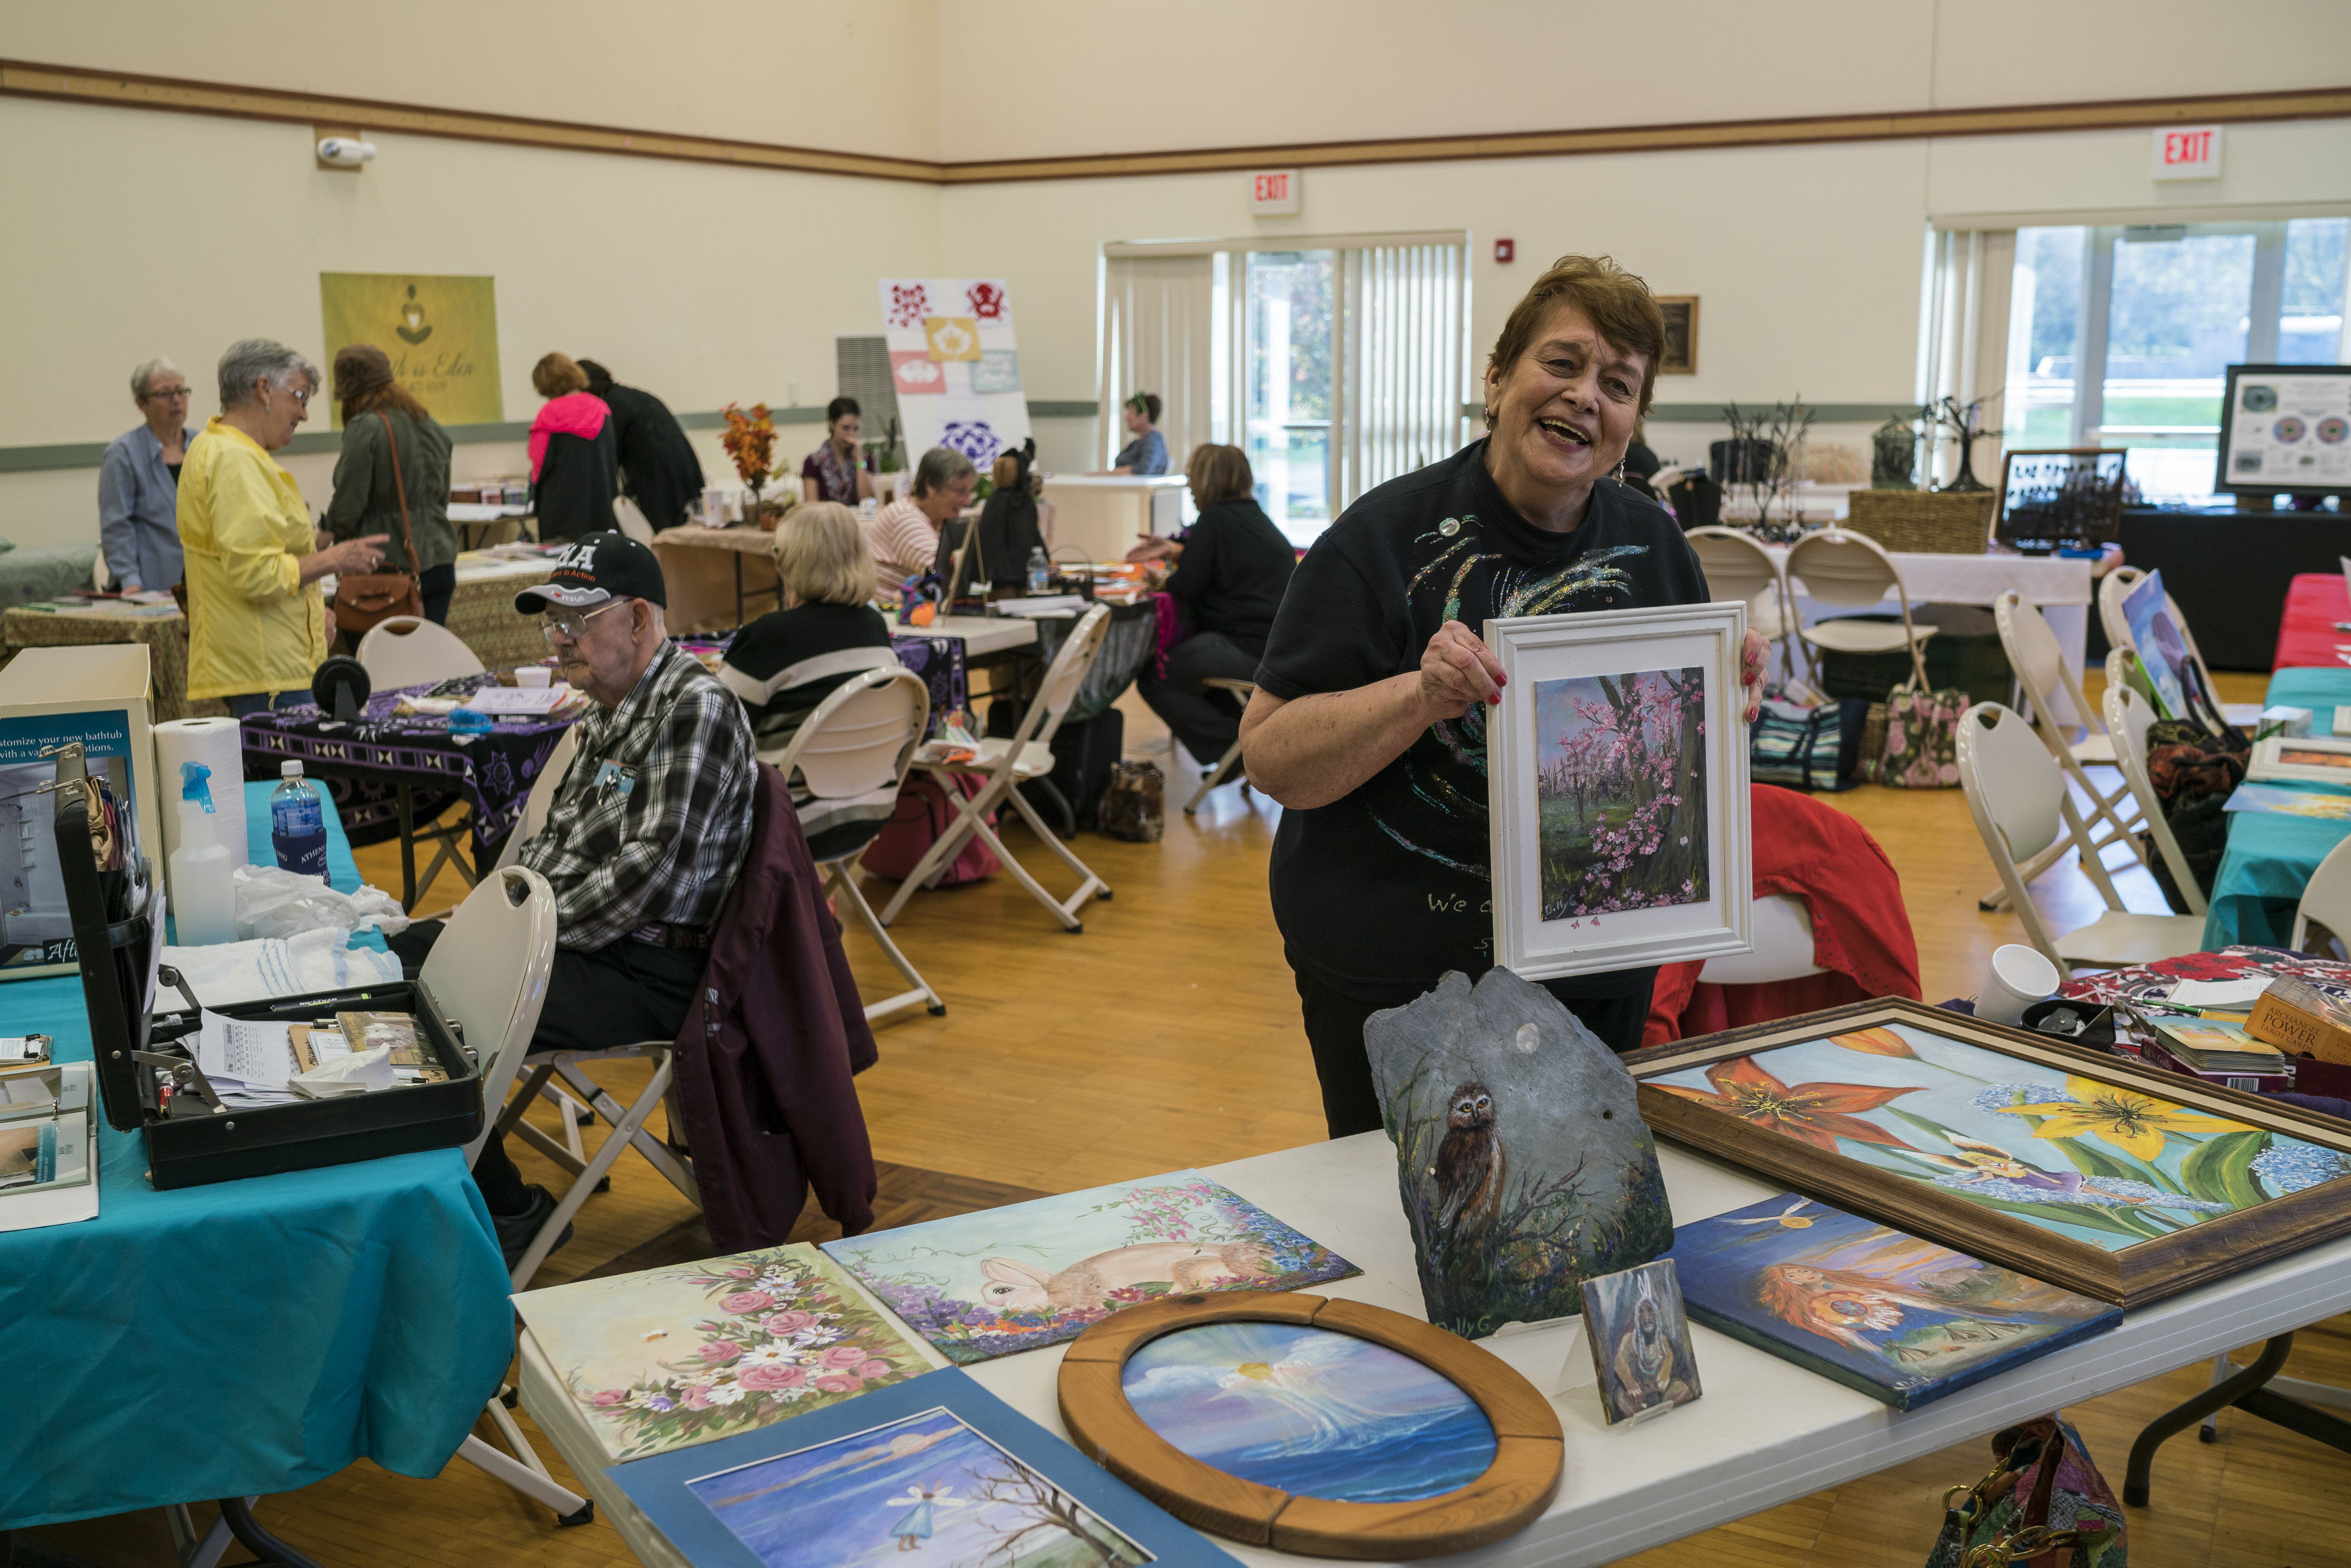 Dolly G. displays her artwork at the Holistic Health and psychic fair on October 29, 2016. (Michael Swensen/WOUB)